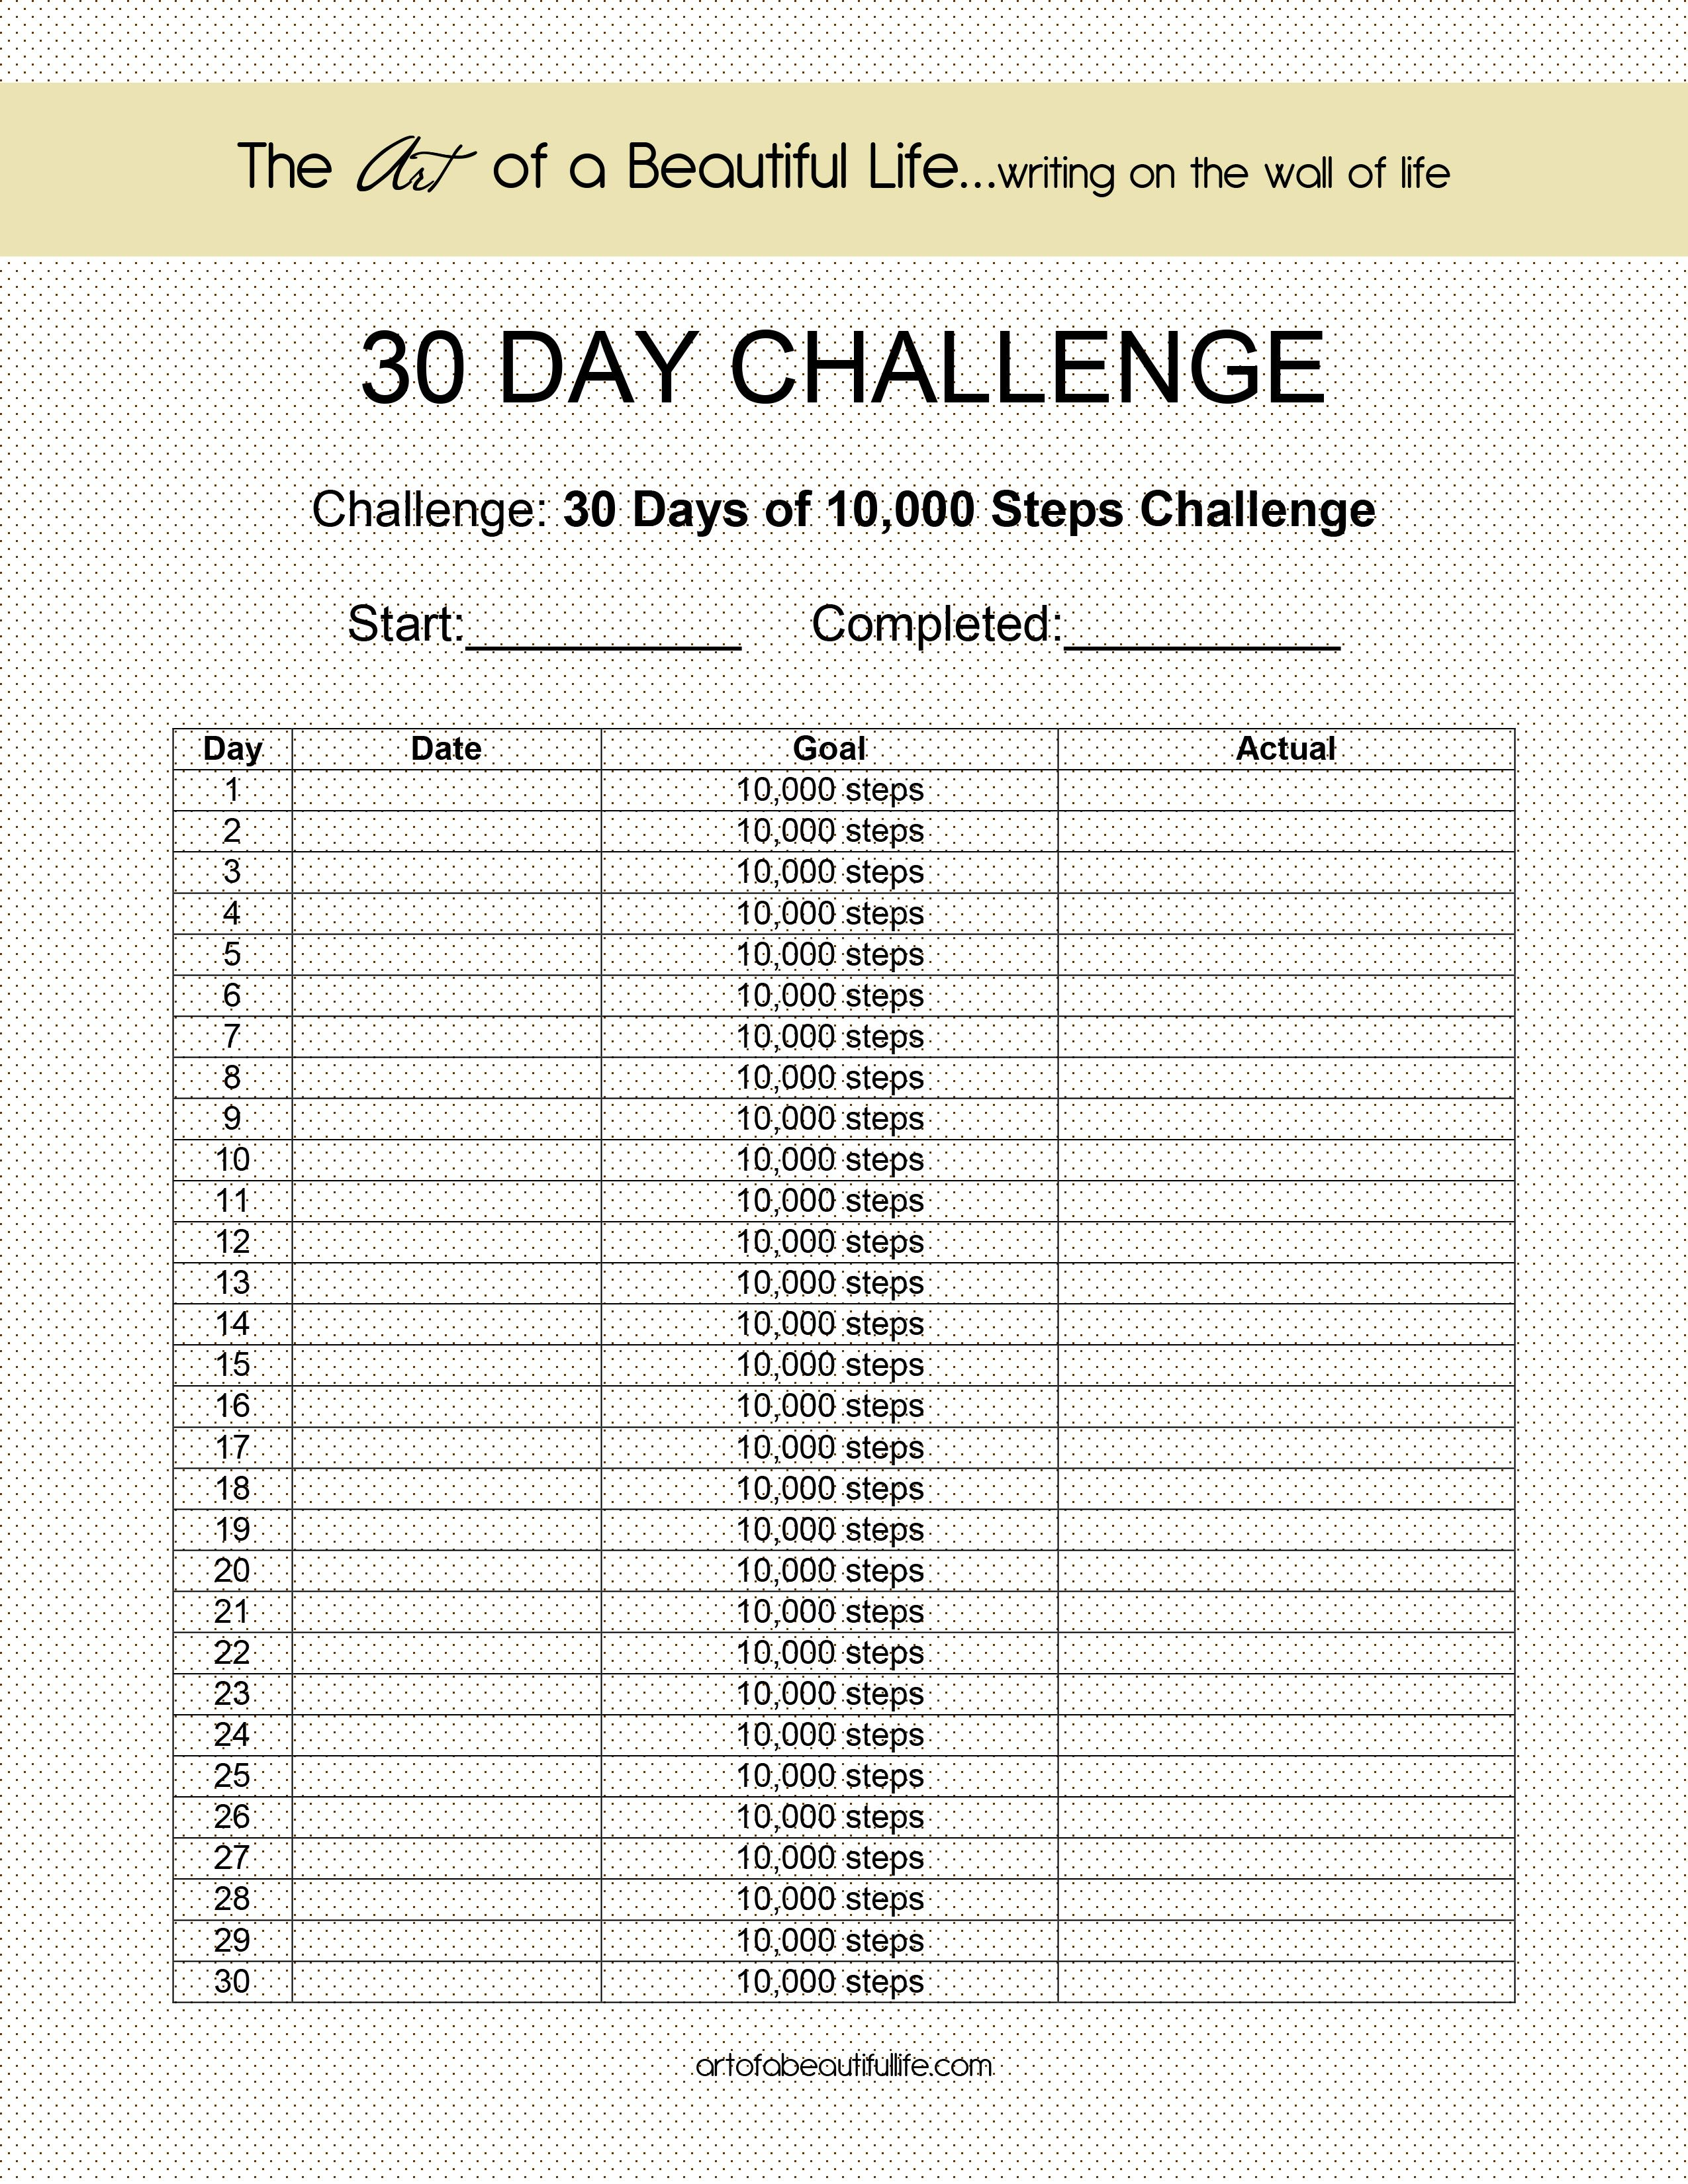 10,000 Steps A Day For 30 Days - Let's Do It!